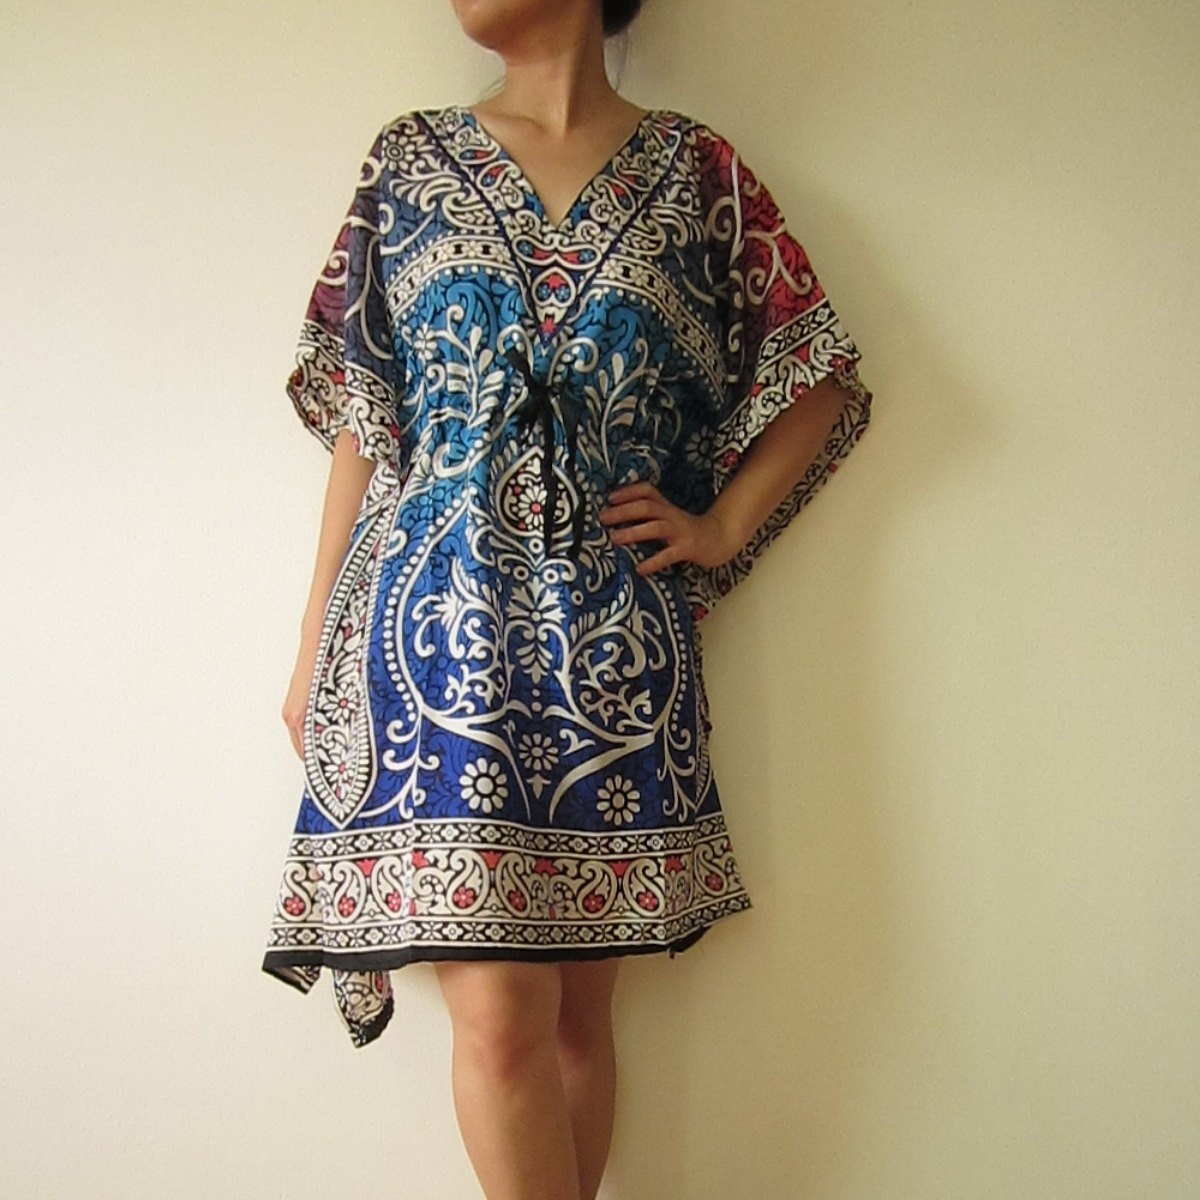 You searched for: kaftan! Etsy is the home to thousands of handmade, vintage, and one-of-a-kind products and gifts related to your search. No matter what you're looking for or where you are in the world, our global marketplace of sellers can help you find unique and affordable options. Let's get started!